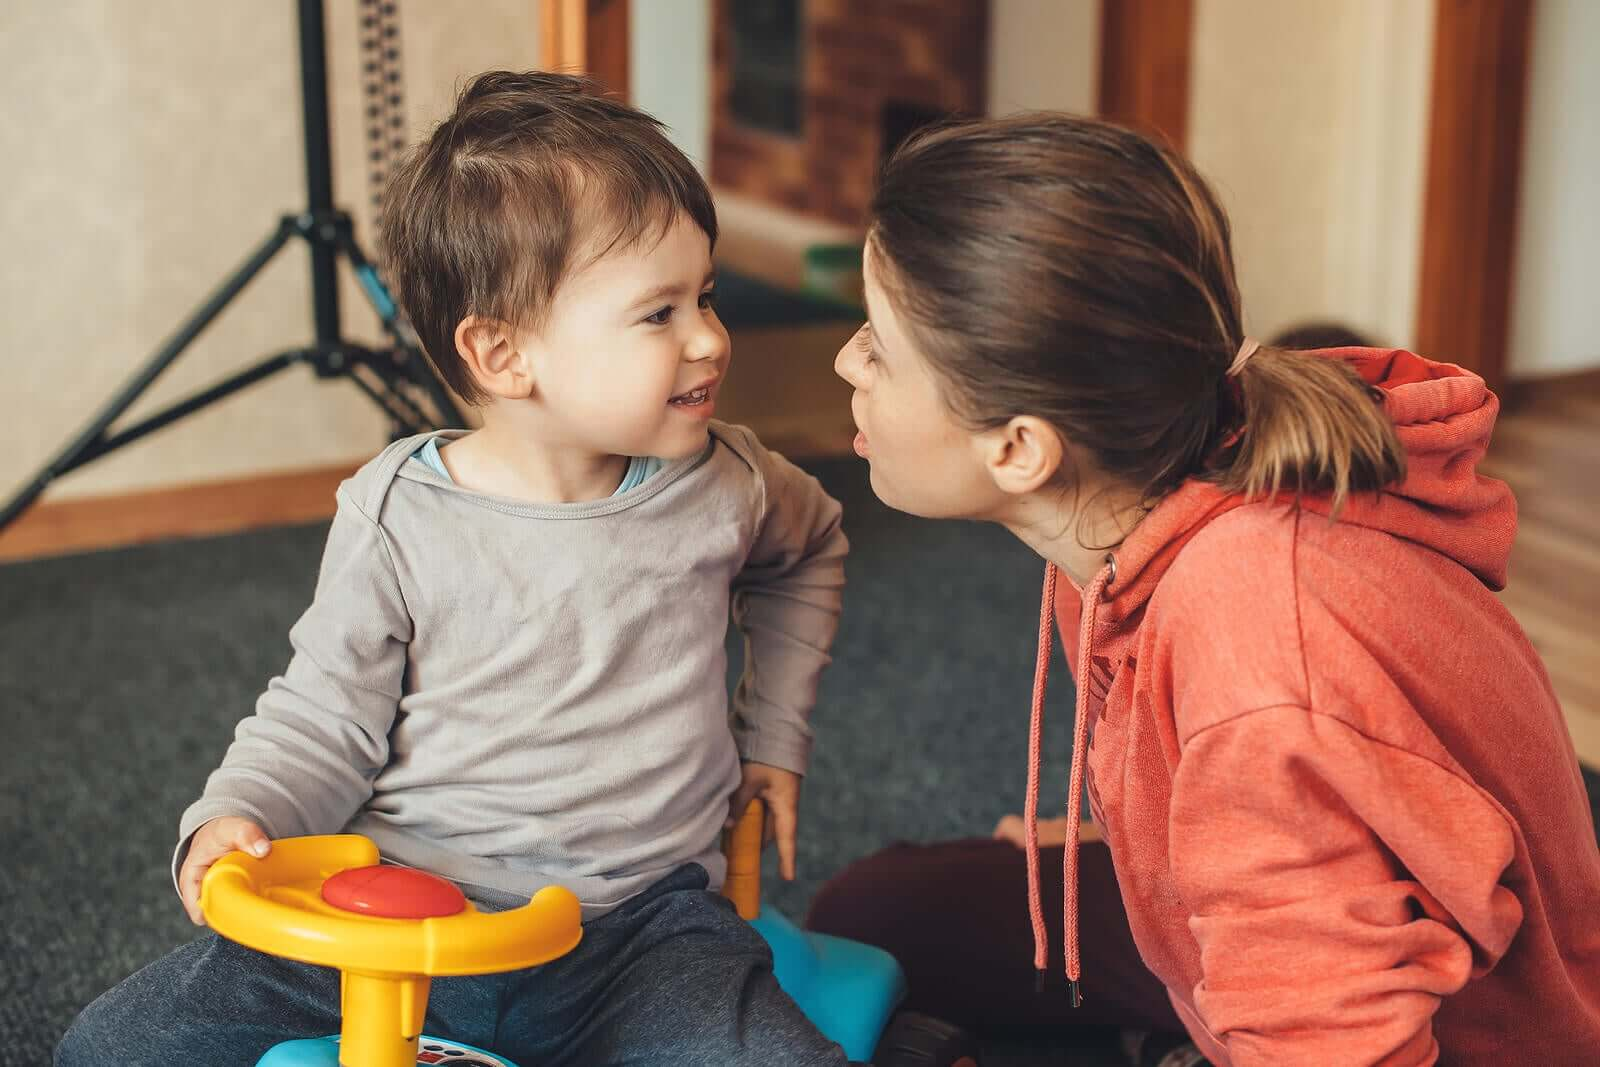 6 Important Changes Between the Ages of 2 and 3